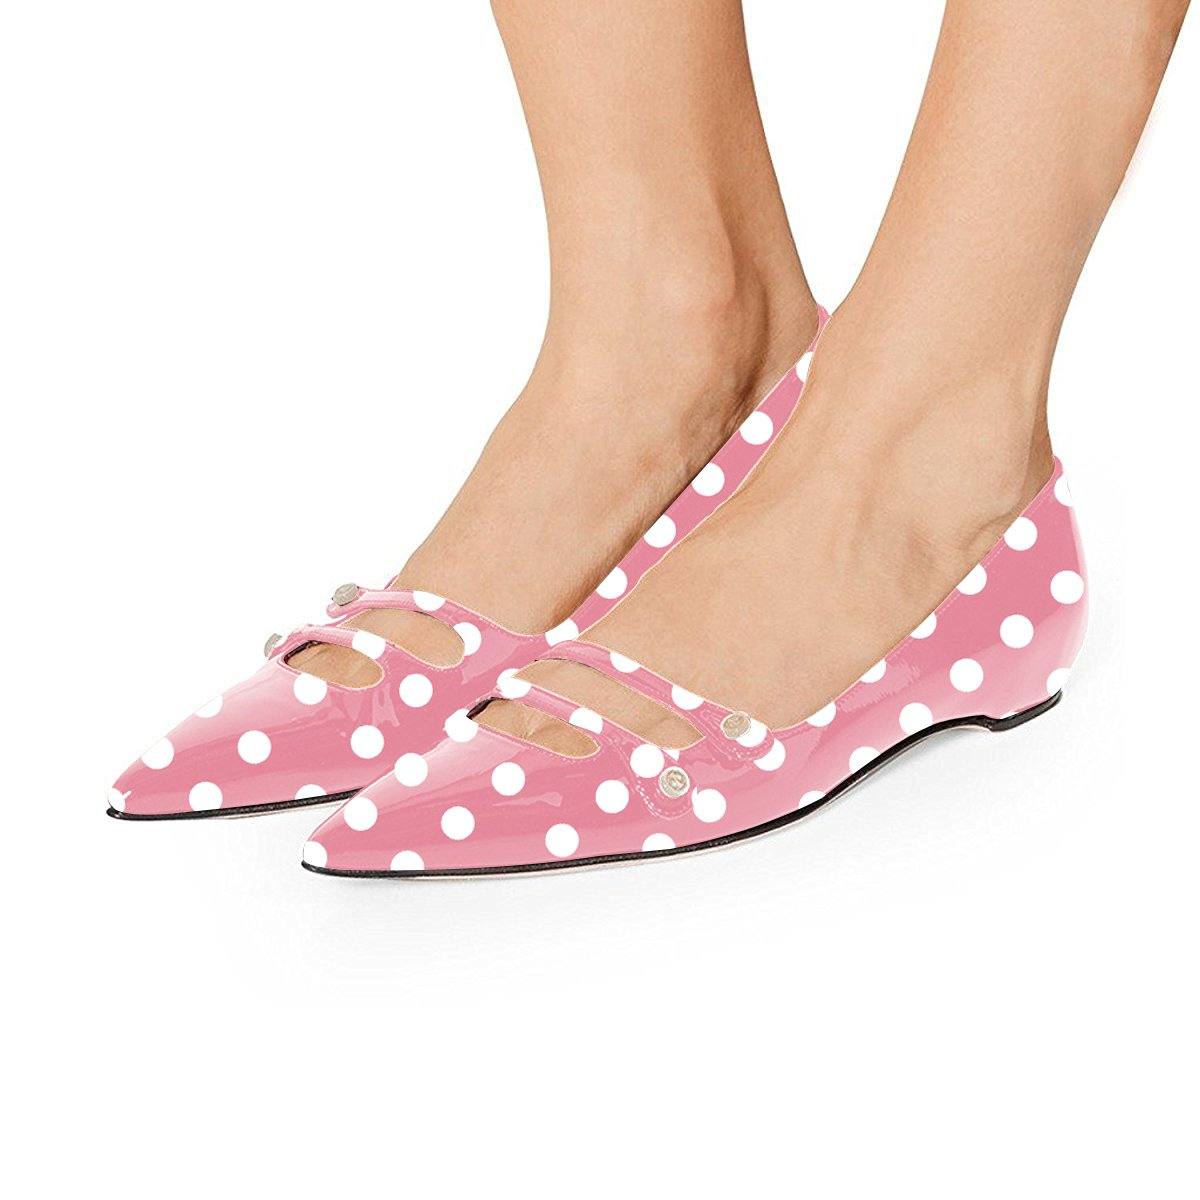 YDN Women Pointed Toe Slip on Flats Hidden Low Heels Pumps Comfort Shoes with Straps B07F8716KJ 4 M US|Pink Polka Dots